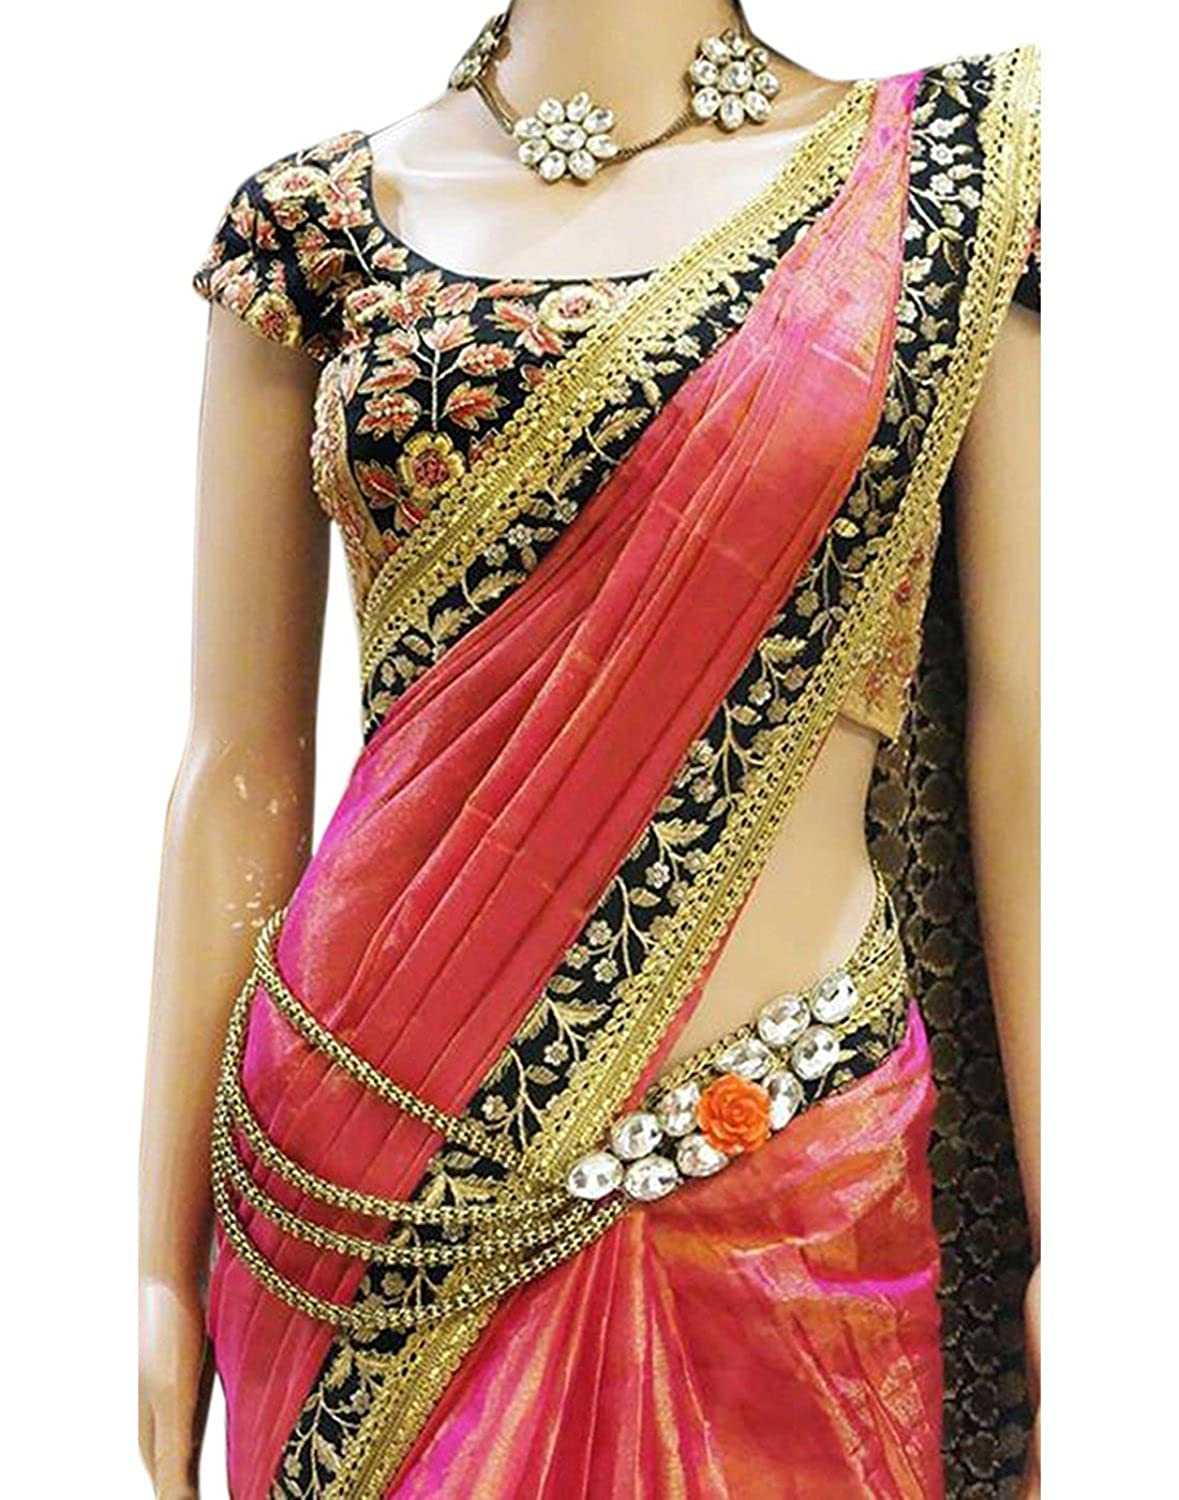 c3ea3997620345 Designer Bollywood Sari Starts At Rs 839. Click Here To view All Collection.